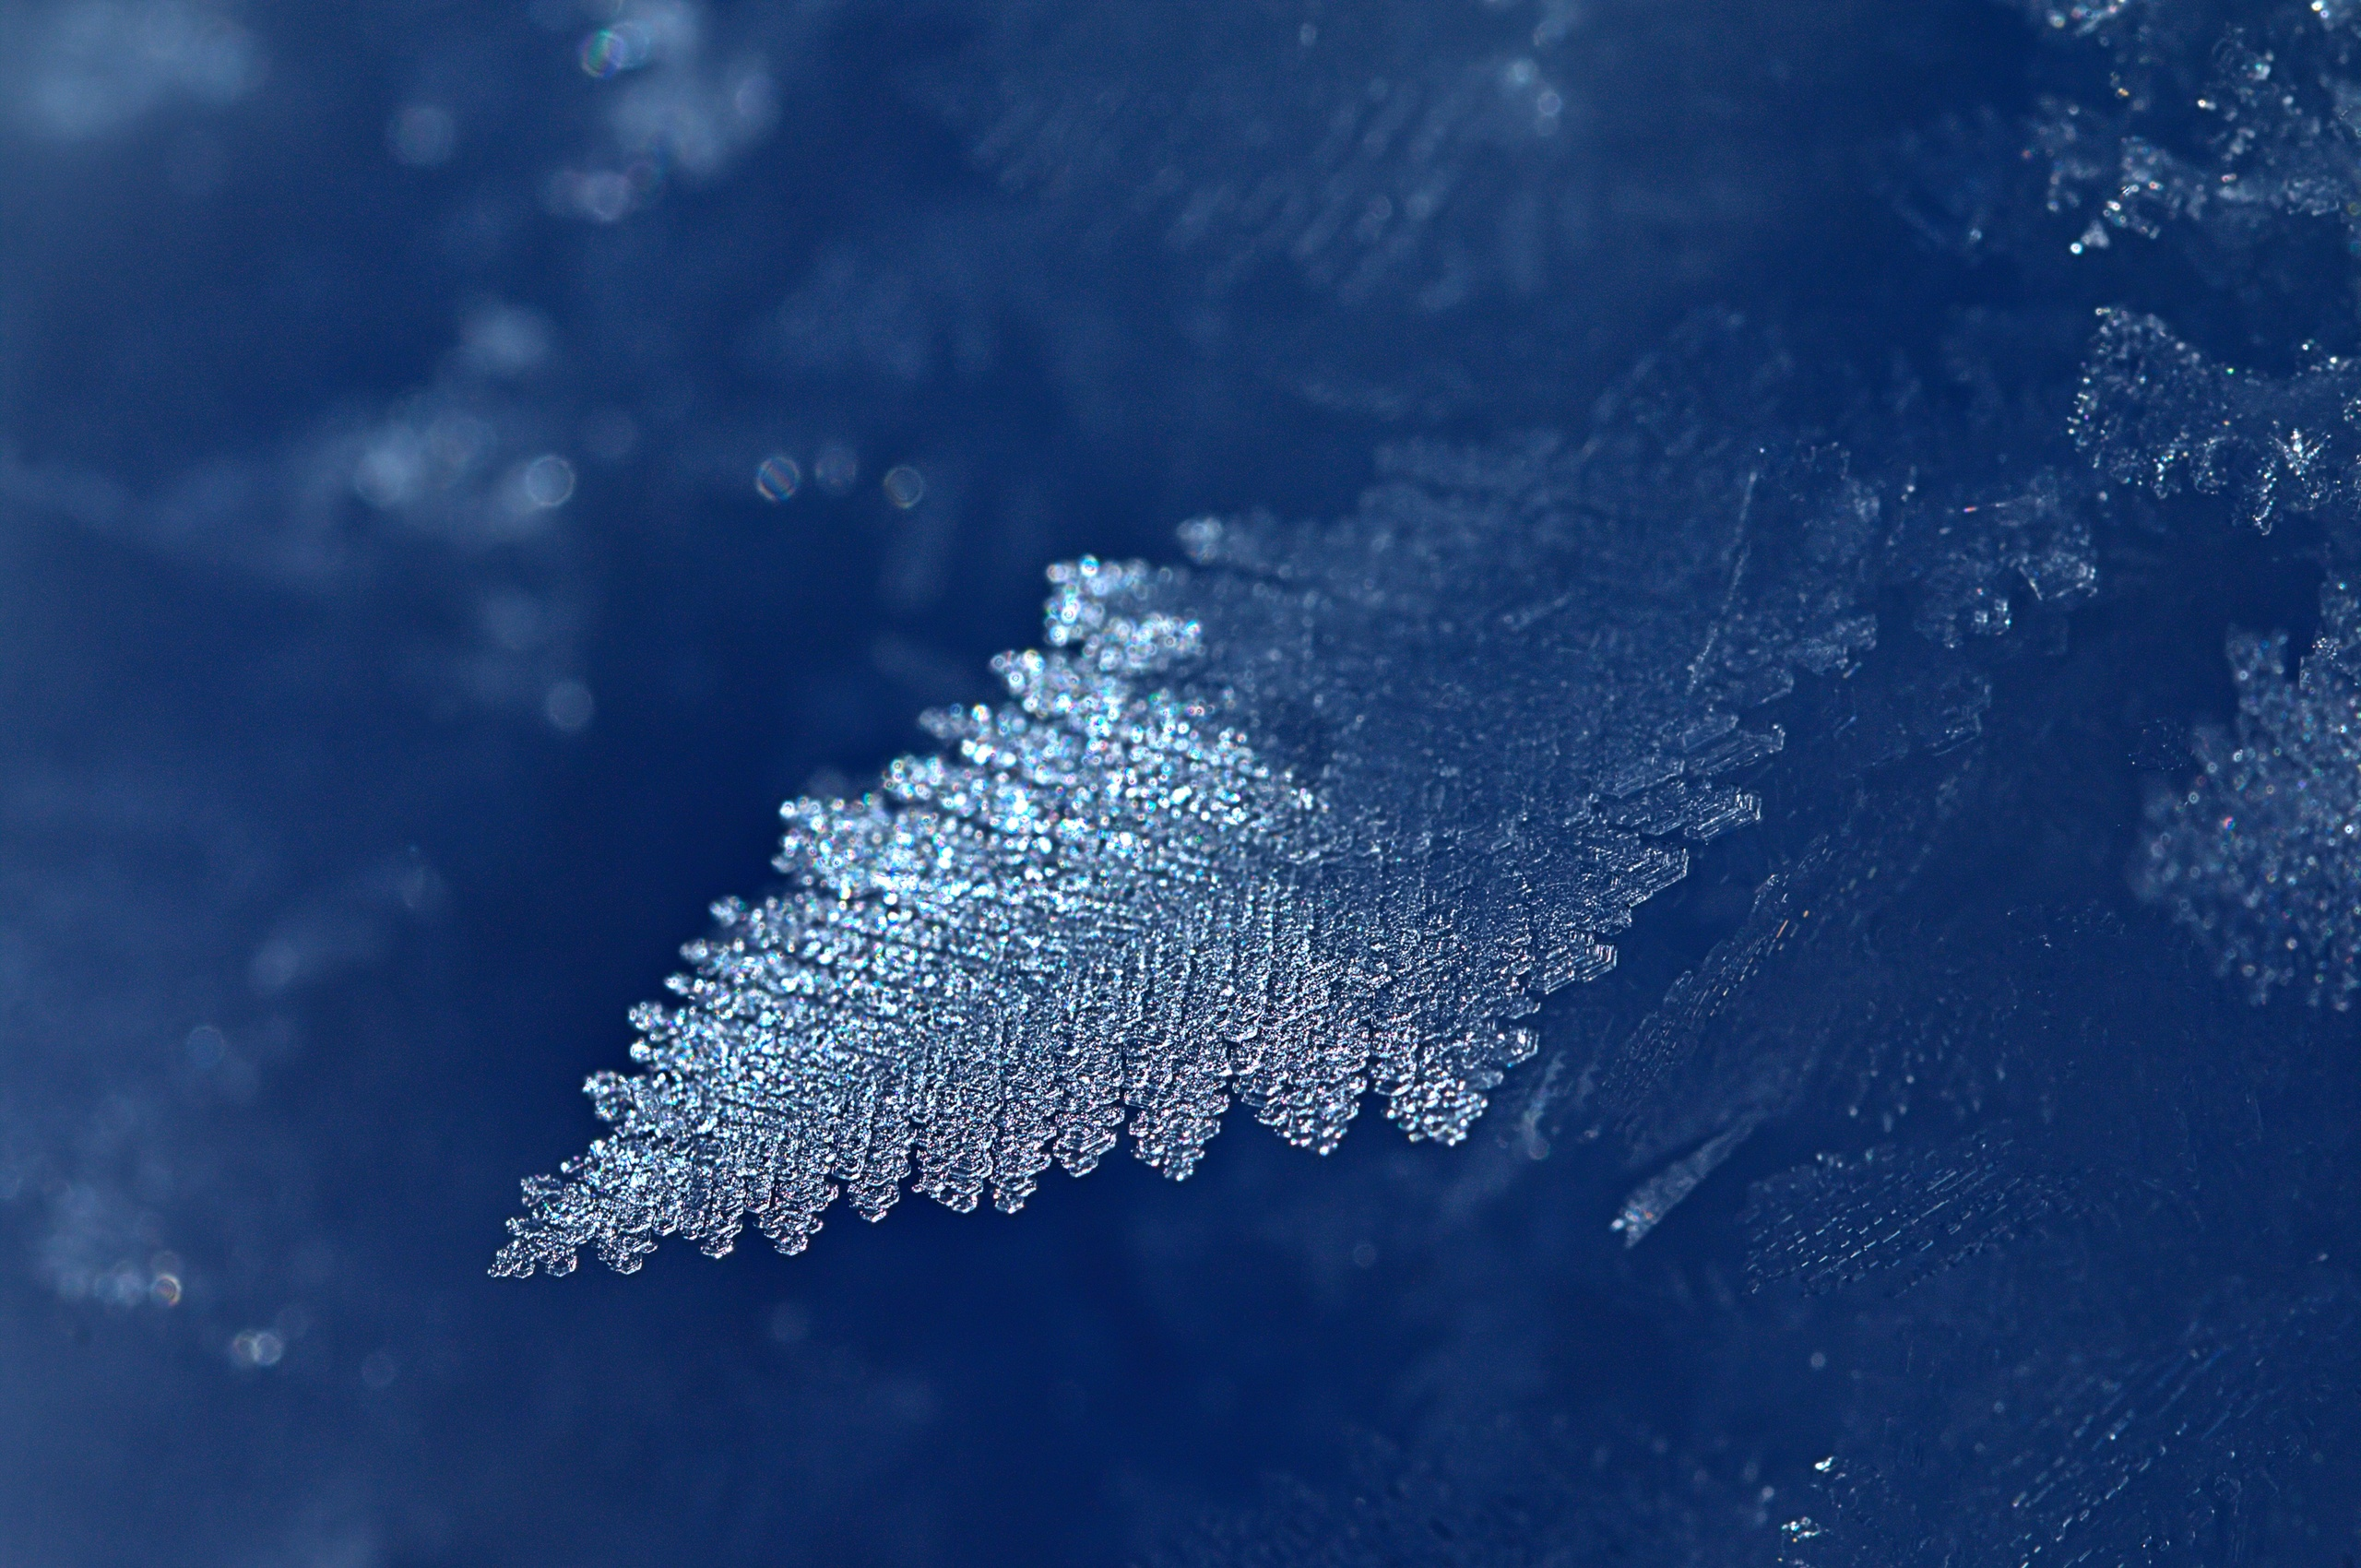 leaf-ice-frost-dq.jpg